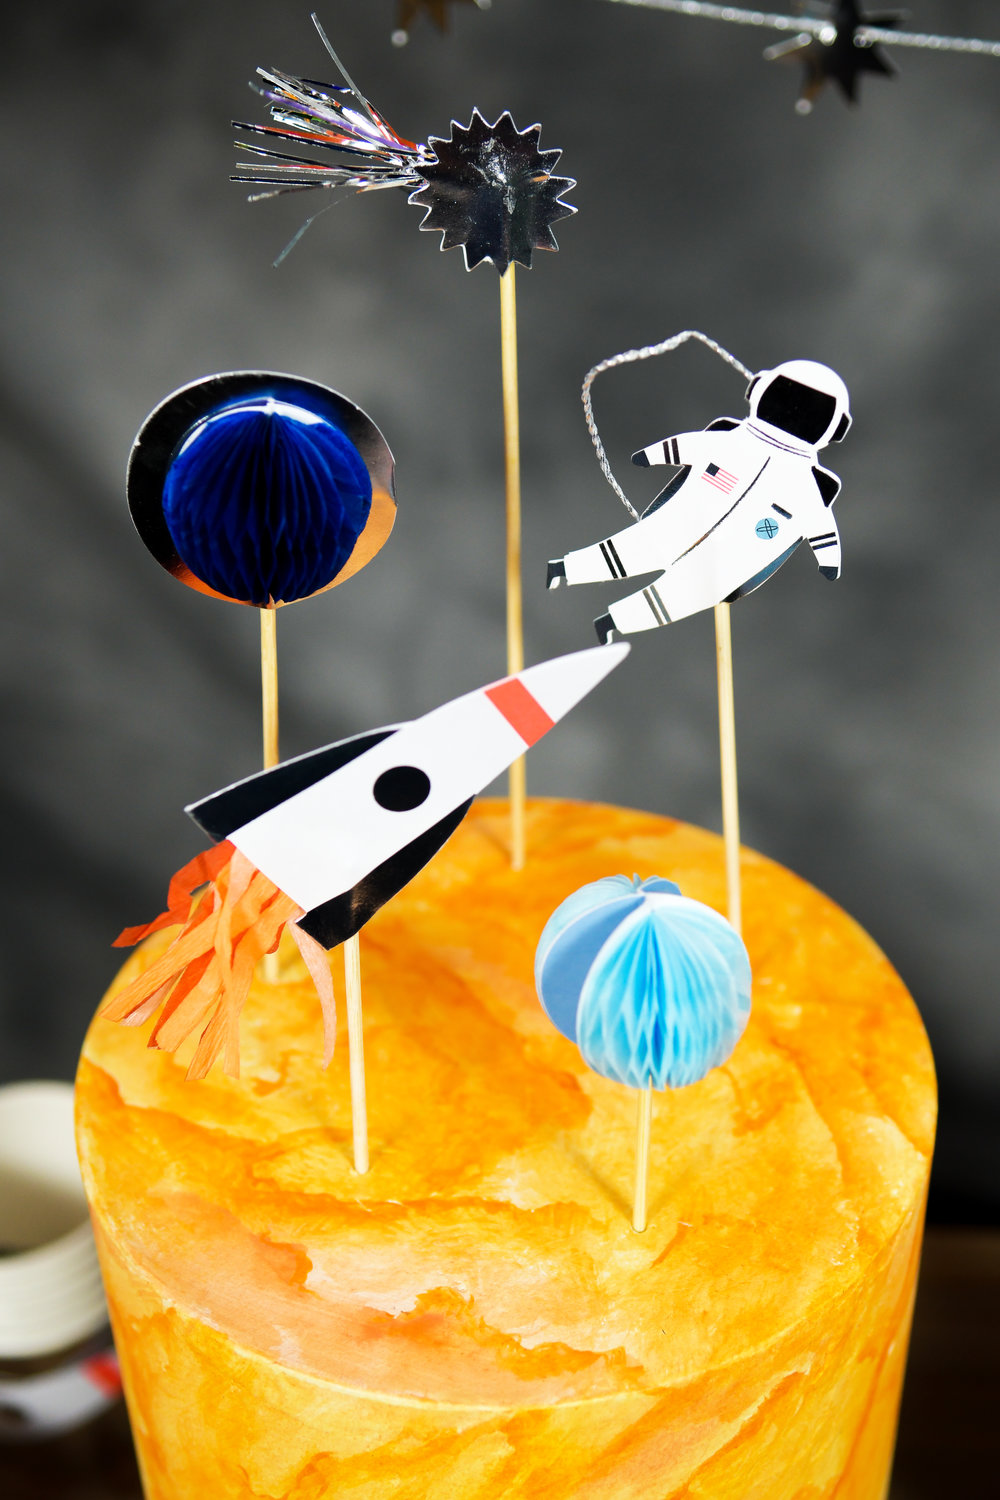 Space Party cake topper.jpg